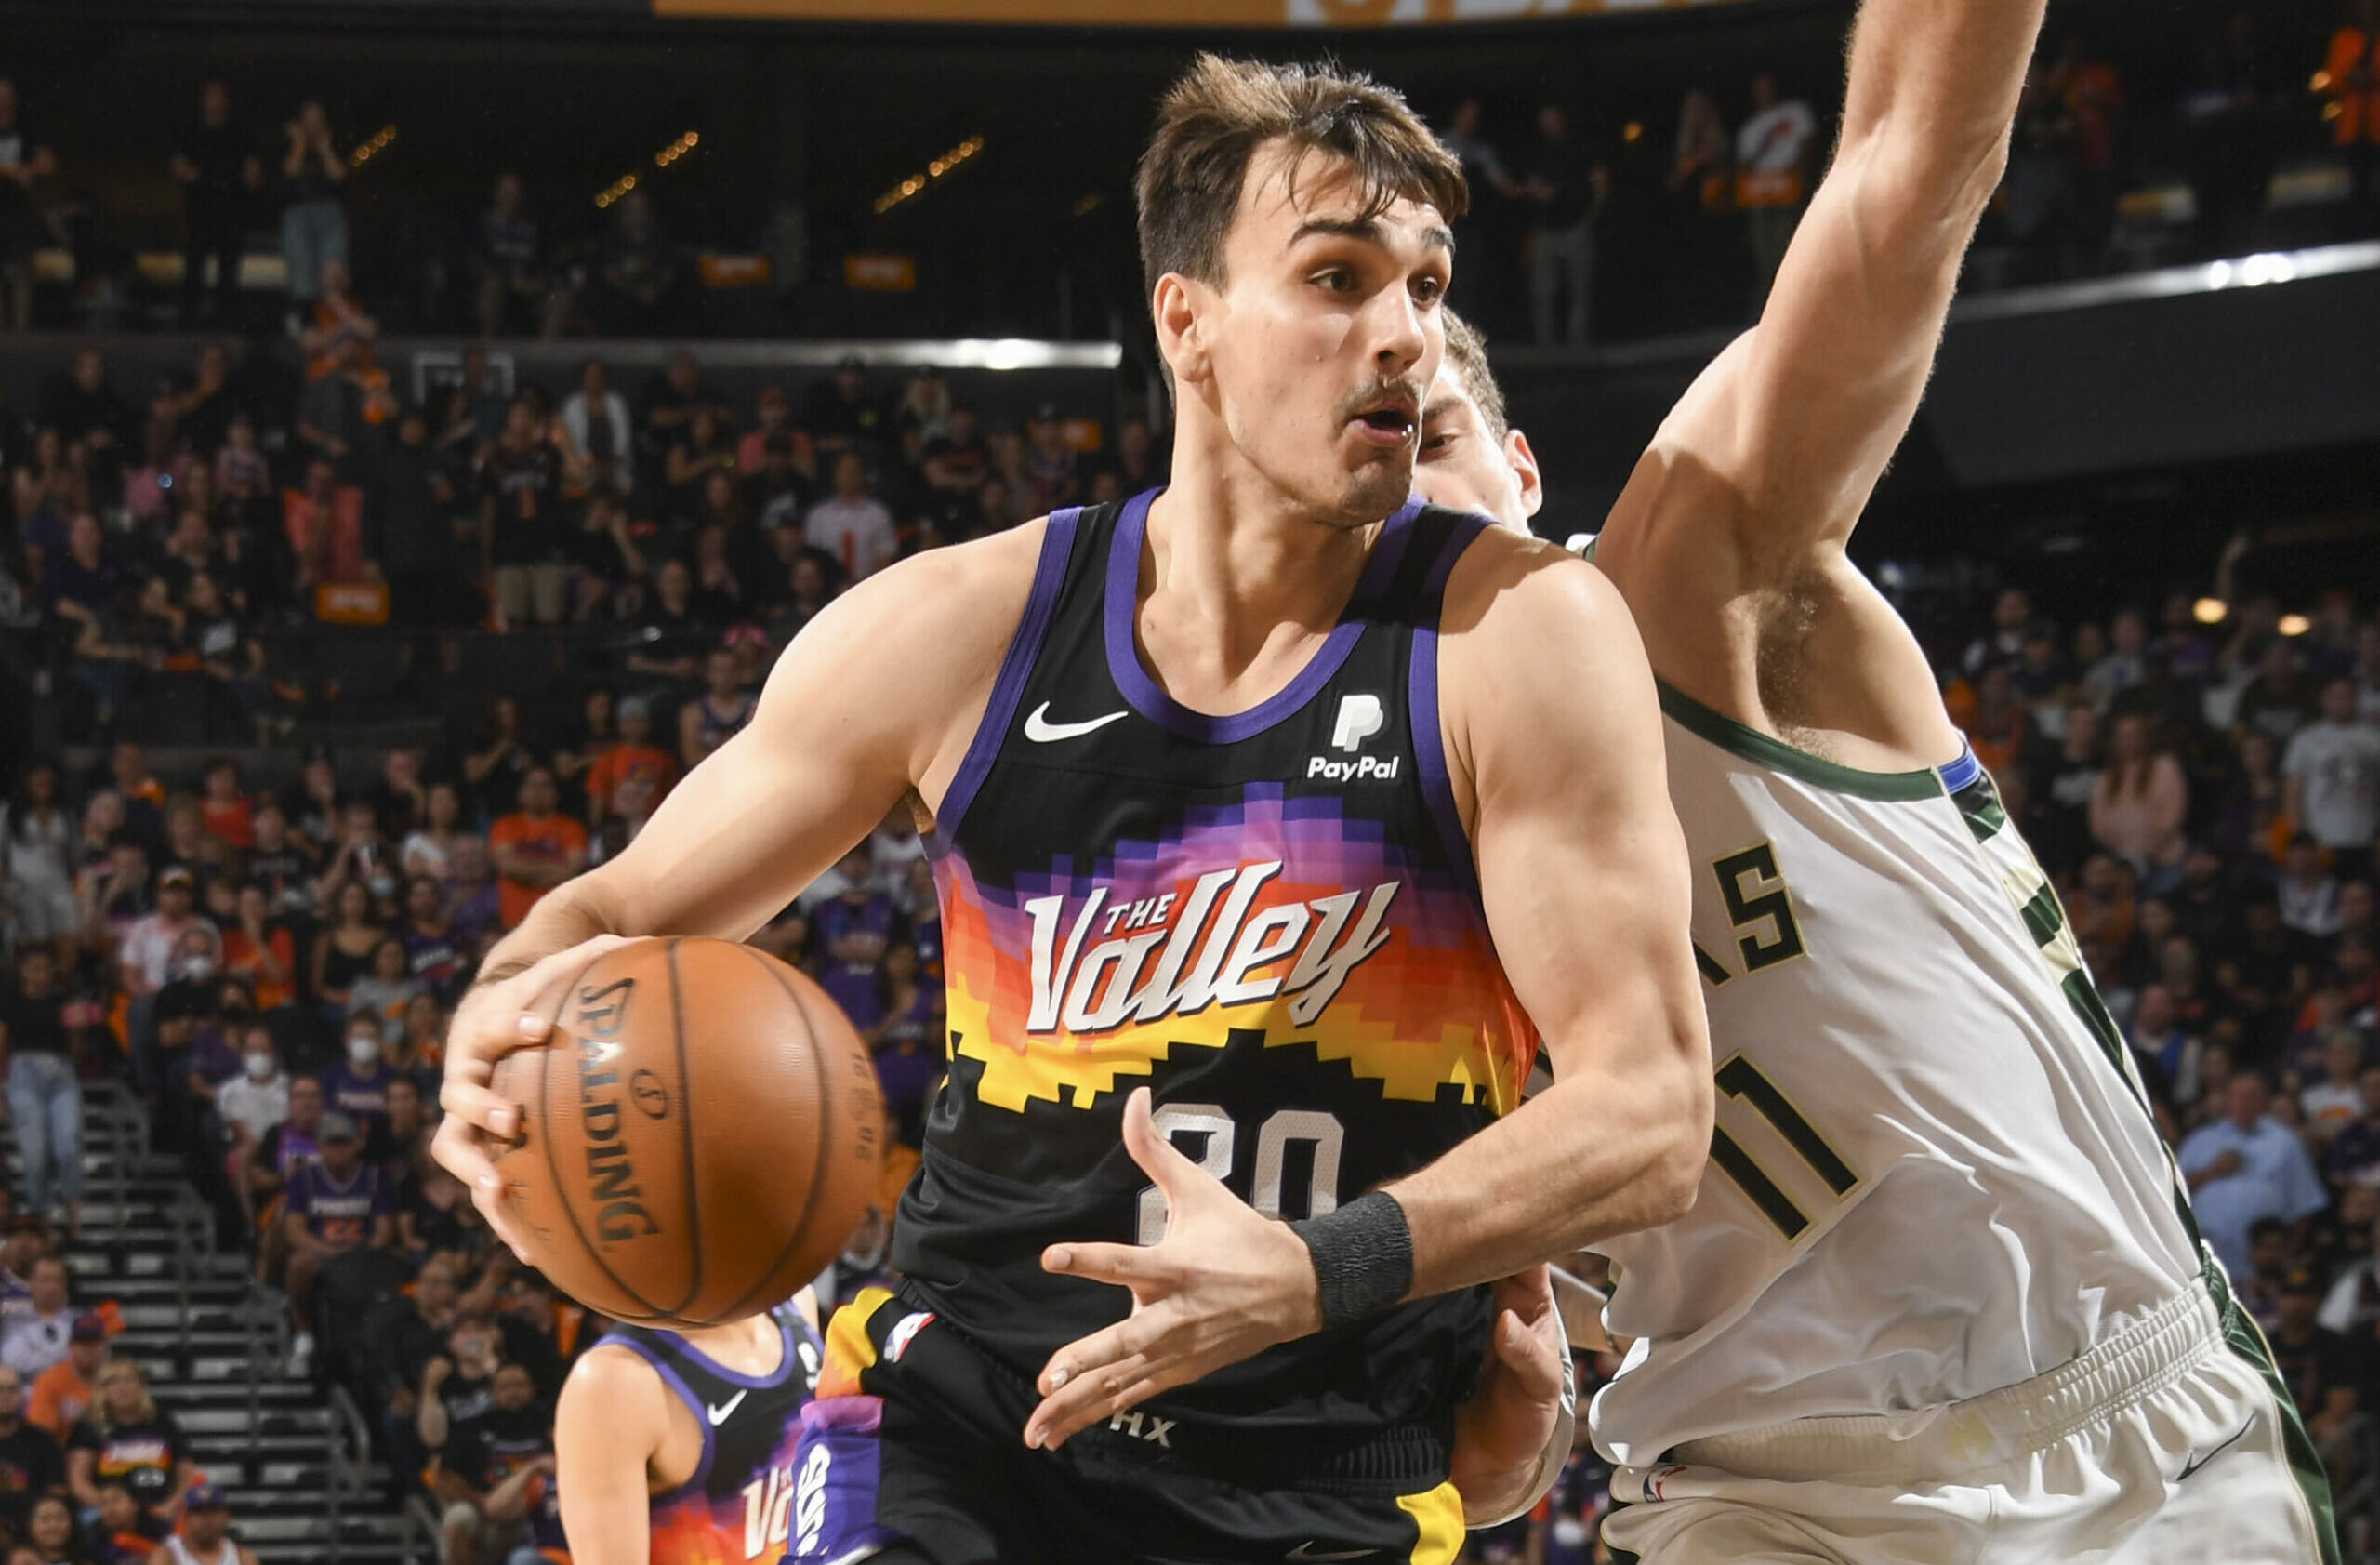 Suns forward Dario Saric out indefinitely with torn ACL